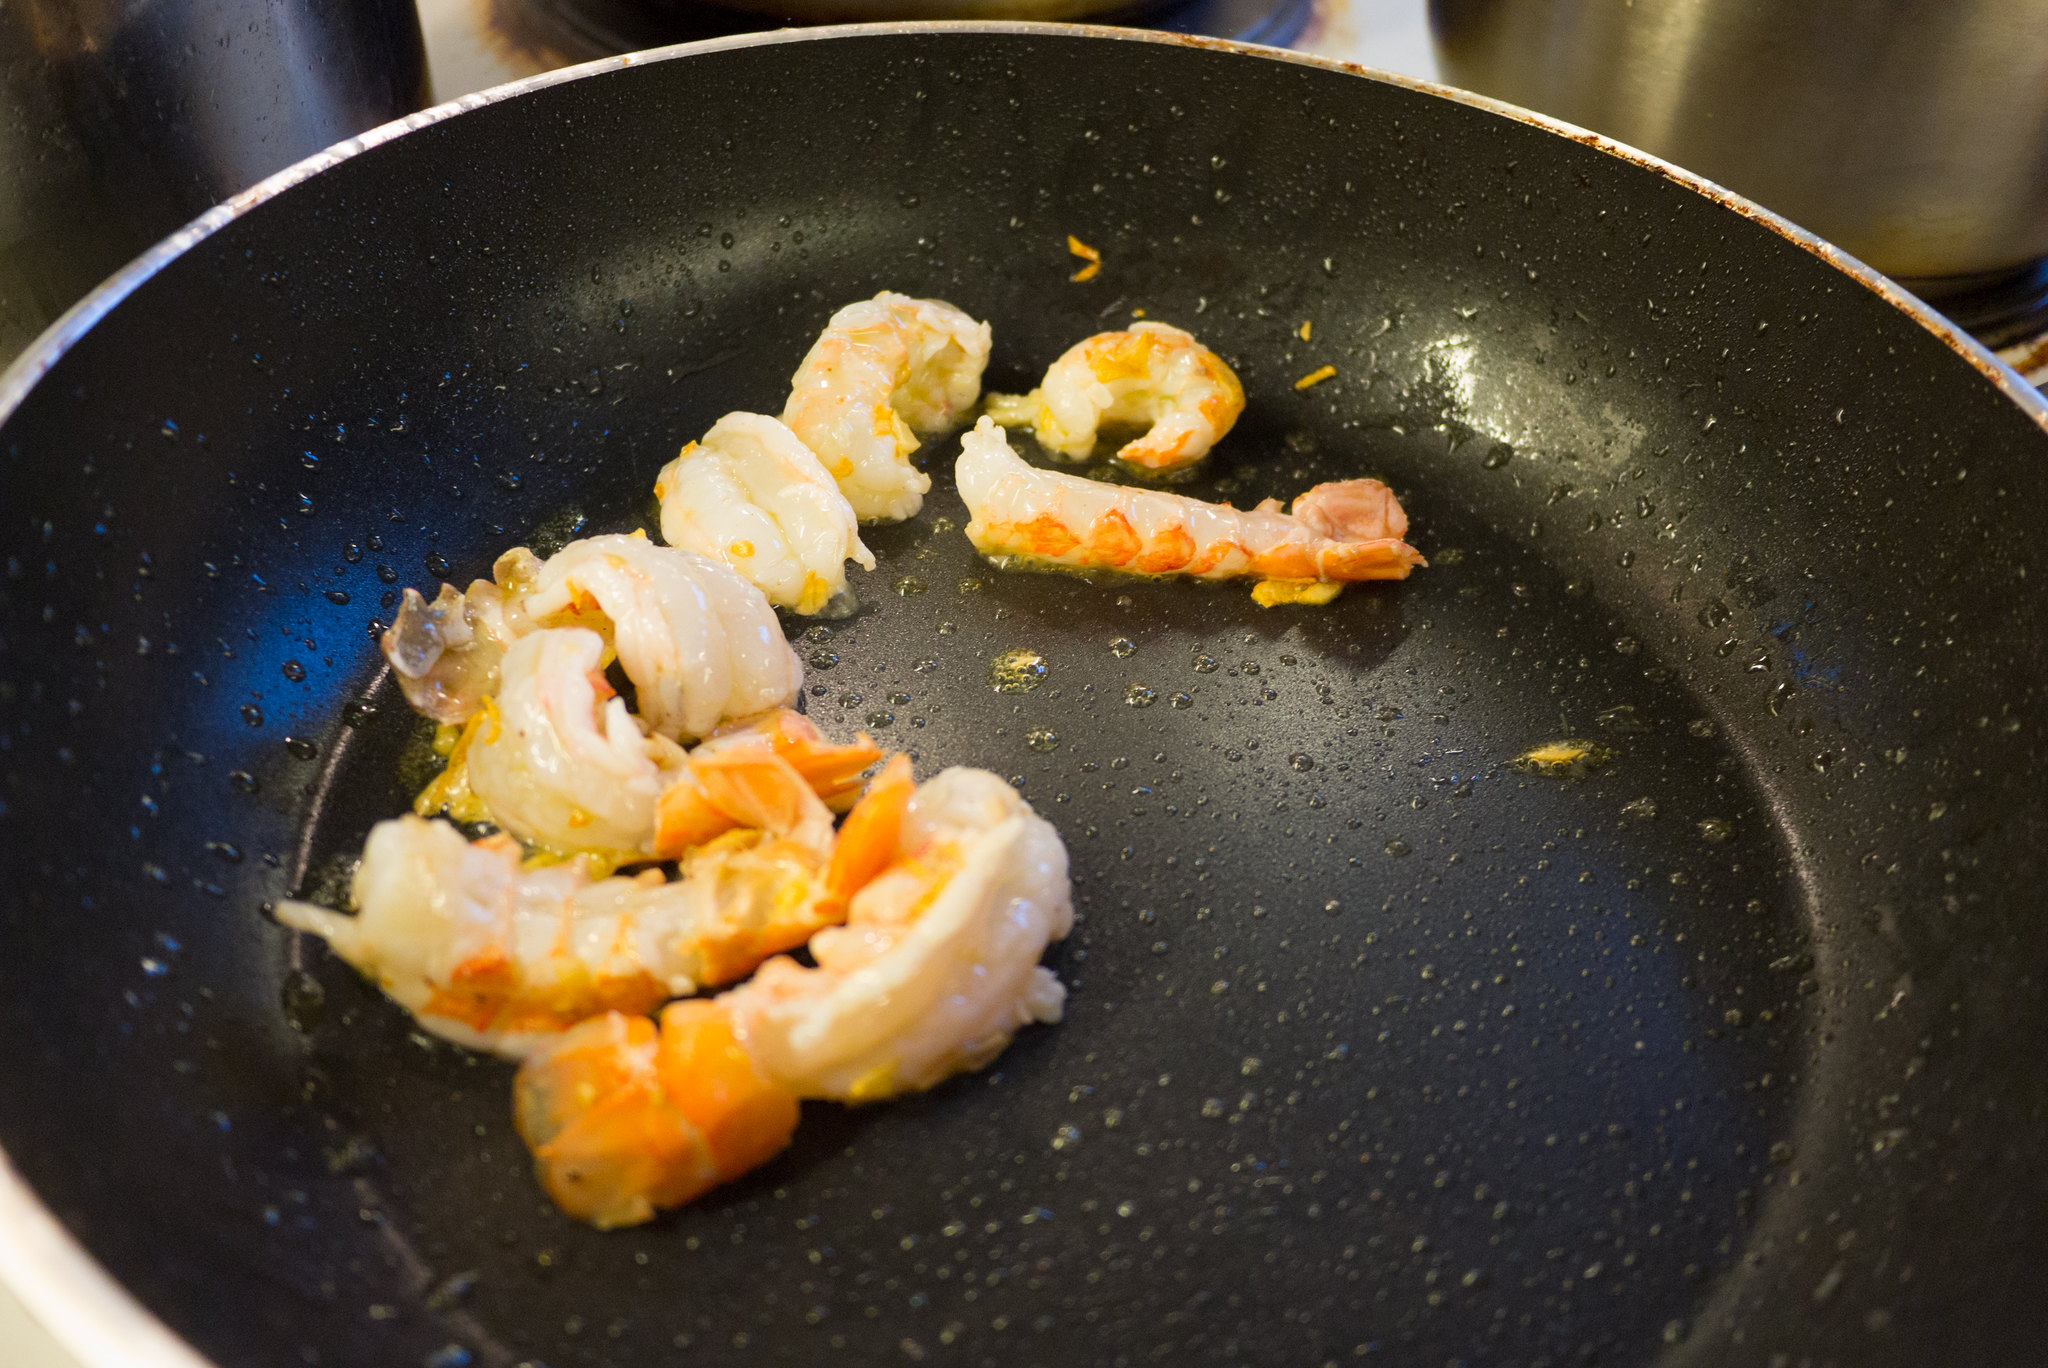 Tails: I love the ivory color and texture of the Icelandic Lobster